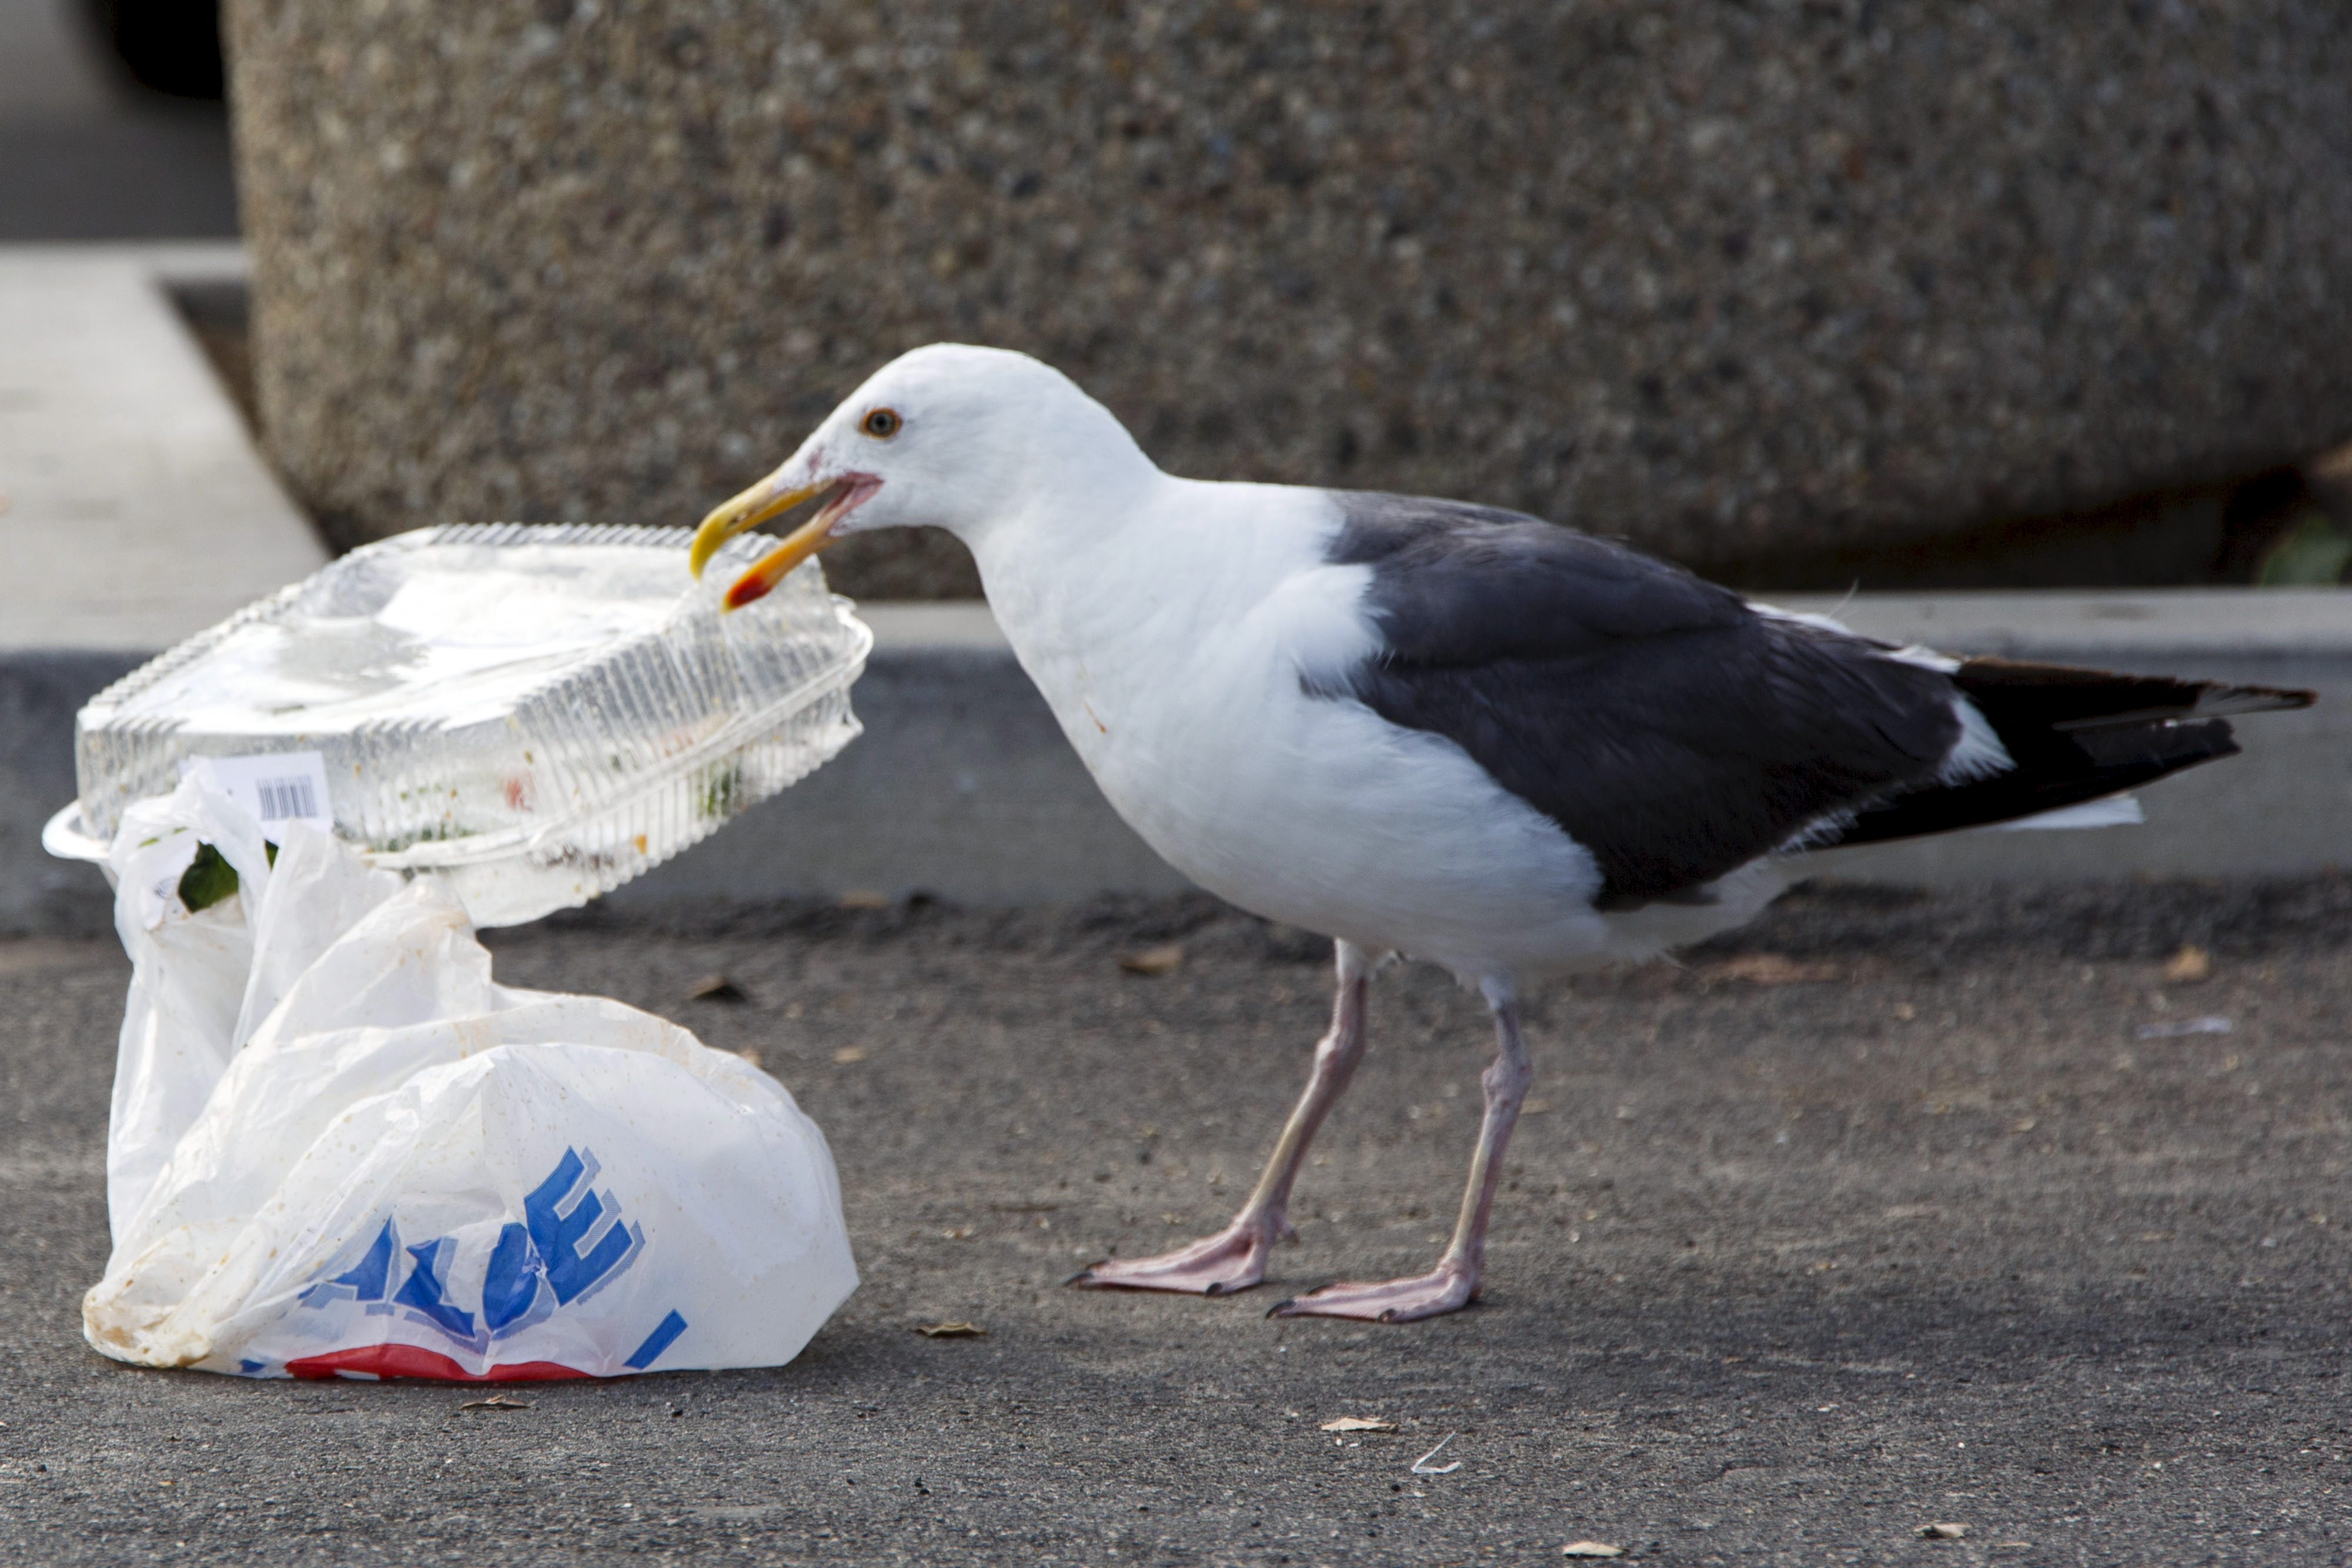 A seagull picks up a plastic container next to a plastic bag.